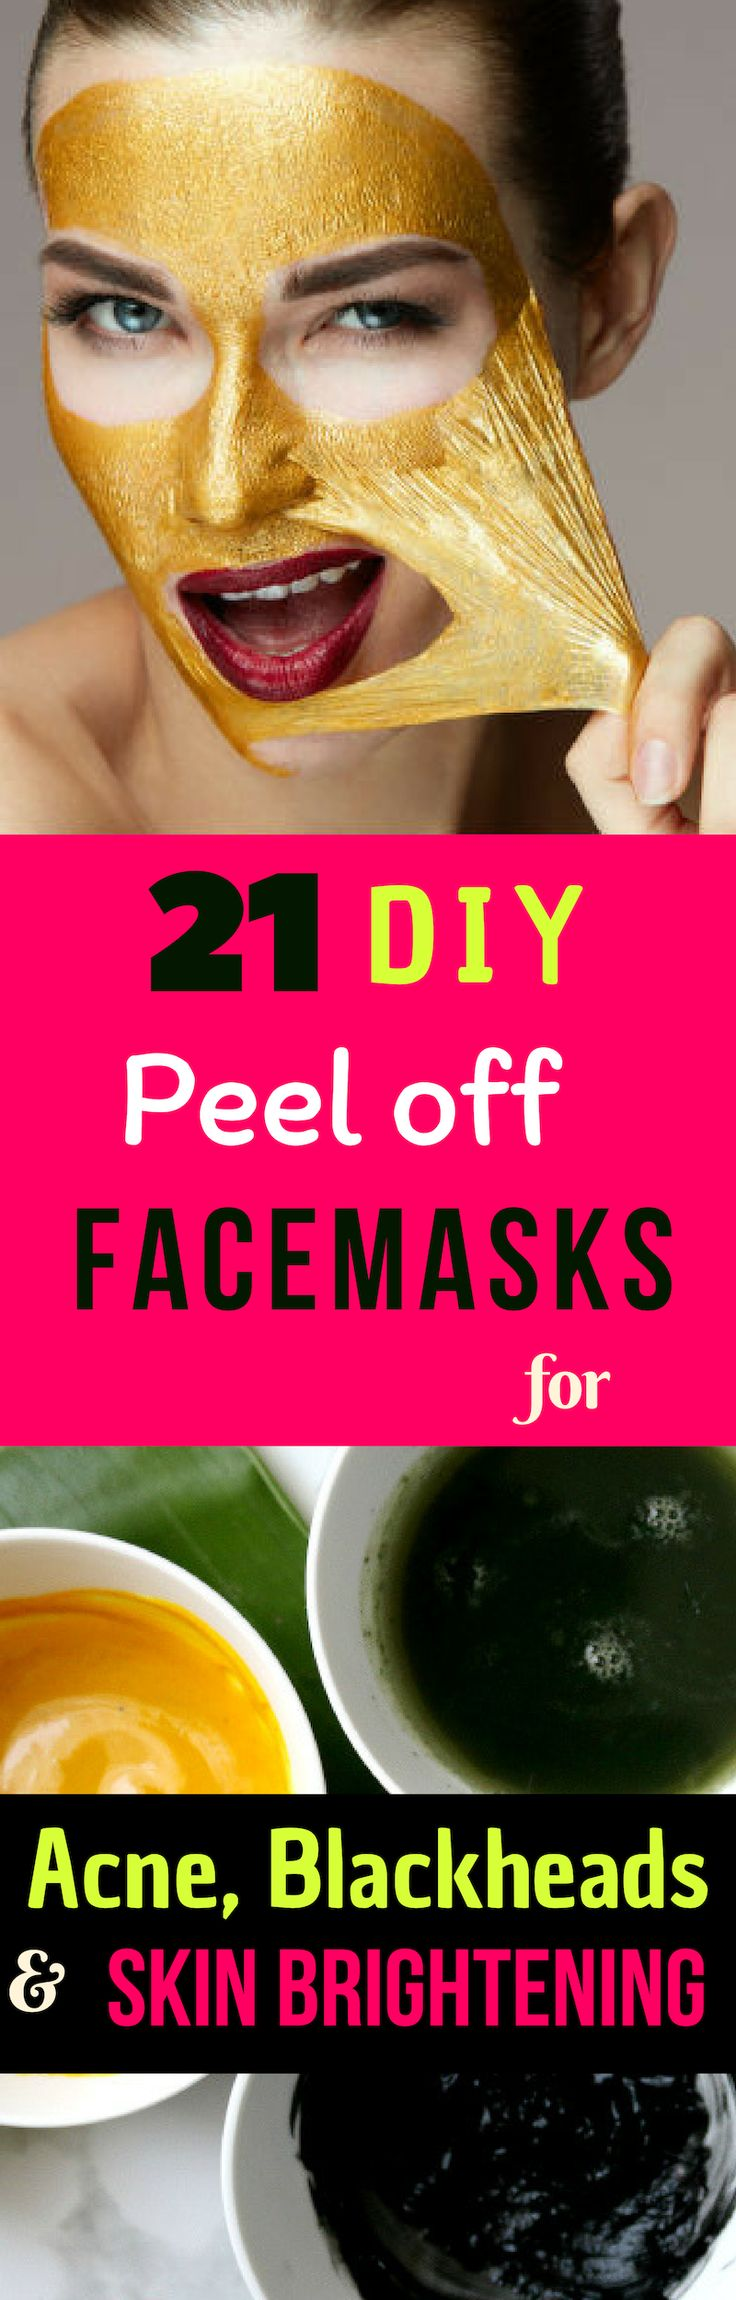 21 DIY Peel-Off Facemasks to Get Rid of Acne, Blackheads and Skin Brightening